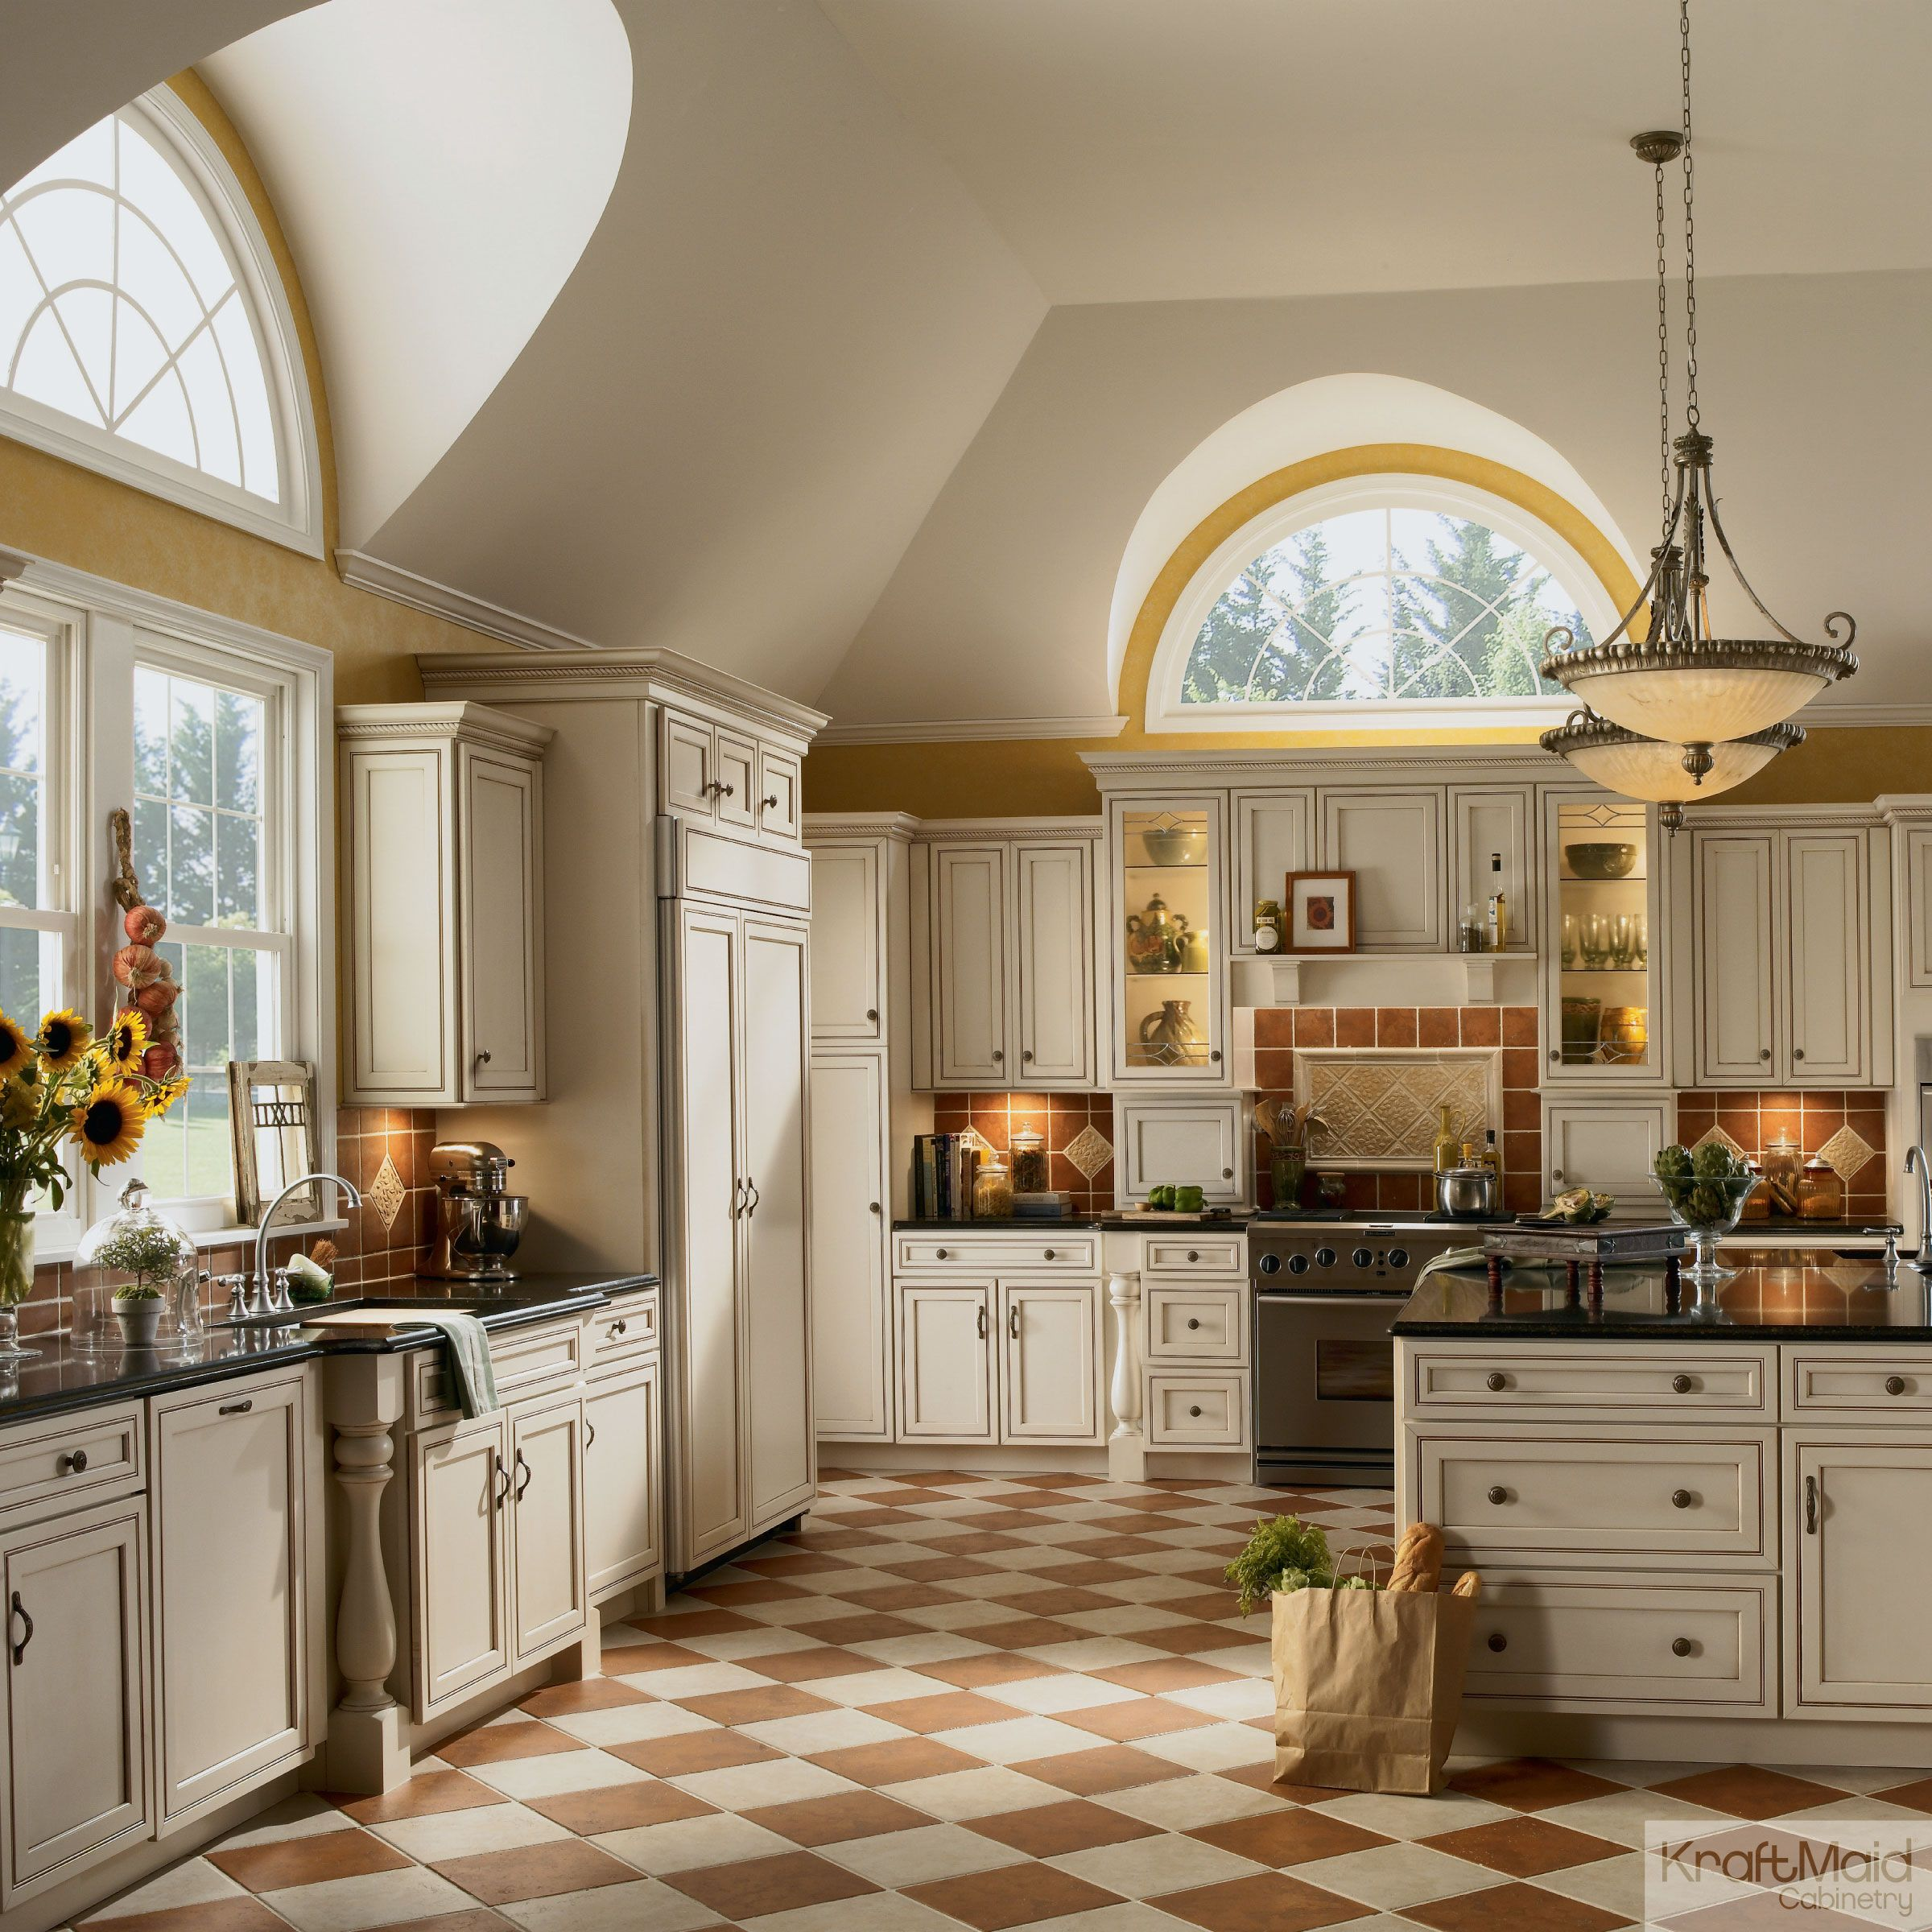 Kraftmaid Kitchen Cabinet Sizes: The Look Of This Luxury KraftMaid Kitchen Can Be Applied